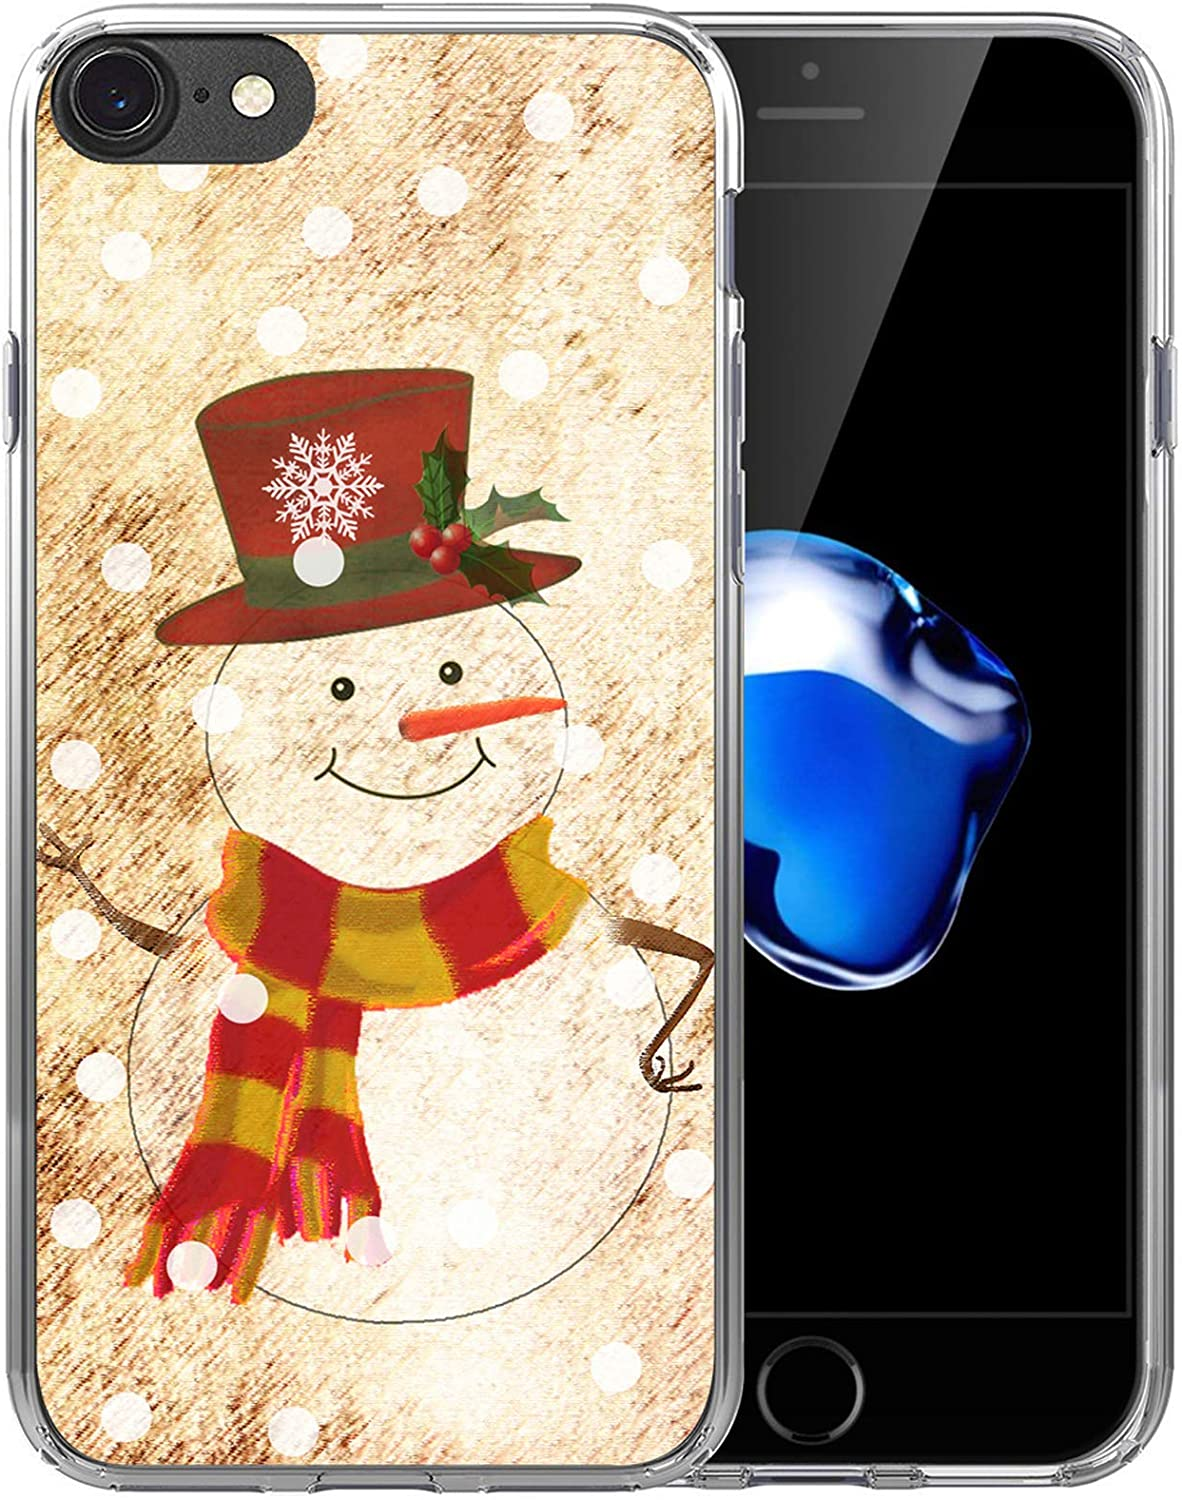 Case for iPhone SE 2020 & 8 & 7 Christmas Snowman/IWONE Rubber Protective Skin Transparent Cover Shockproof Compatible with iPhone 7/8/SE 2 Christmas Theme Design Cute Scene Story Gift Present